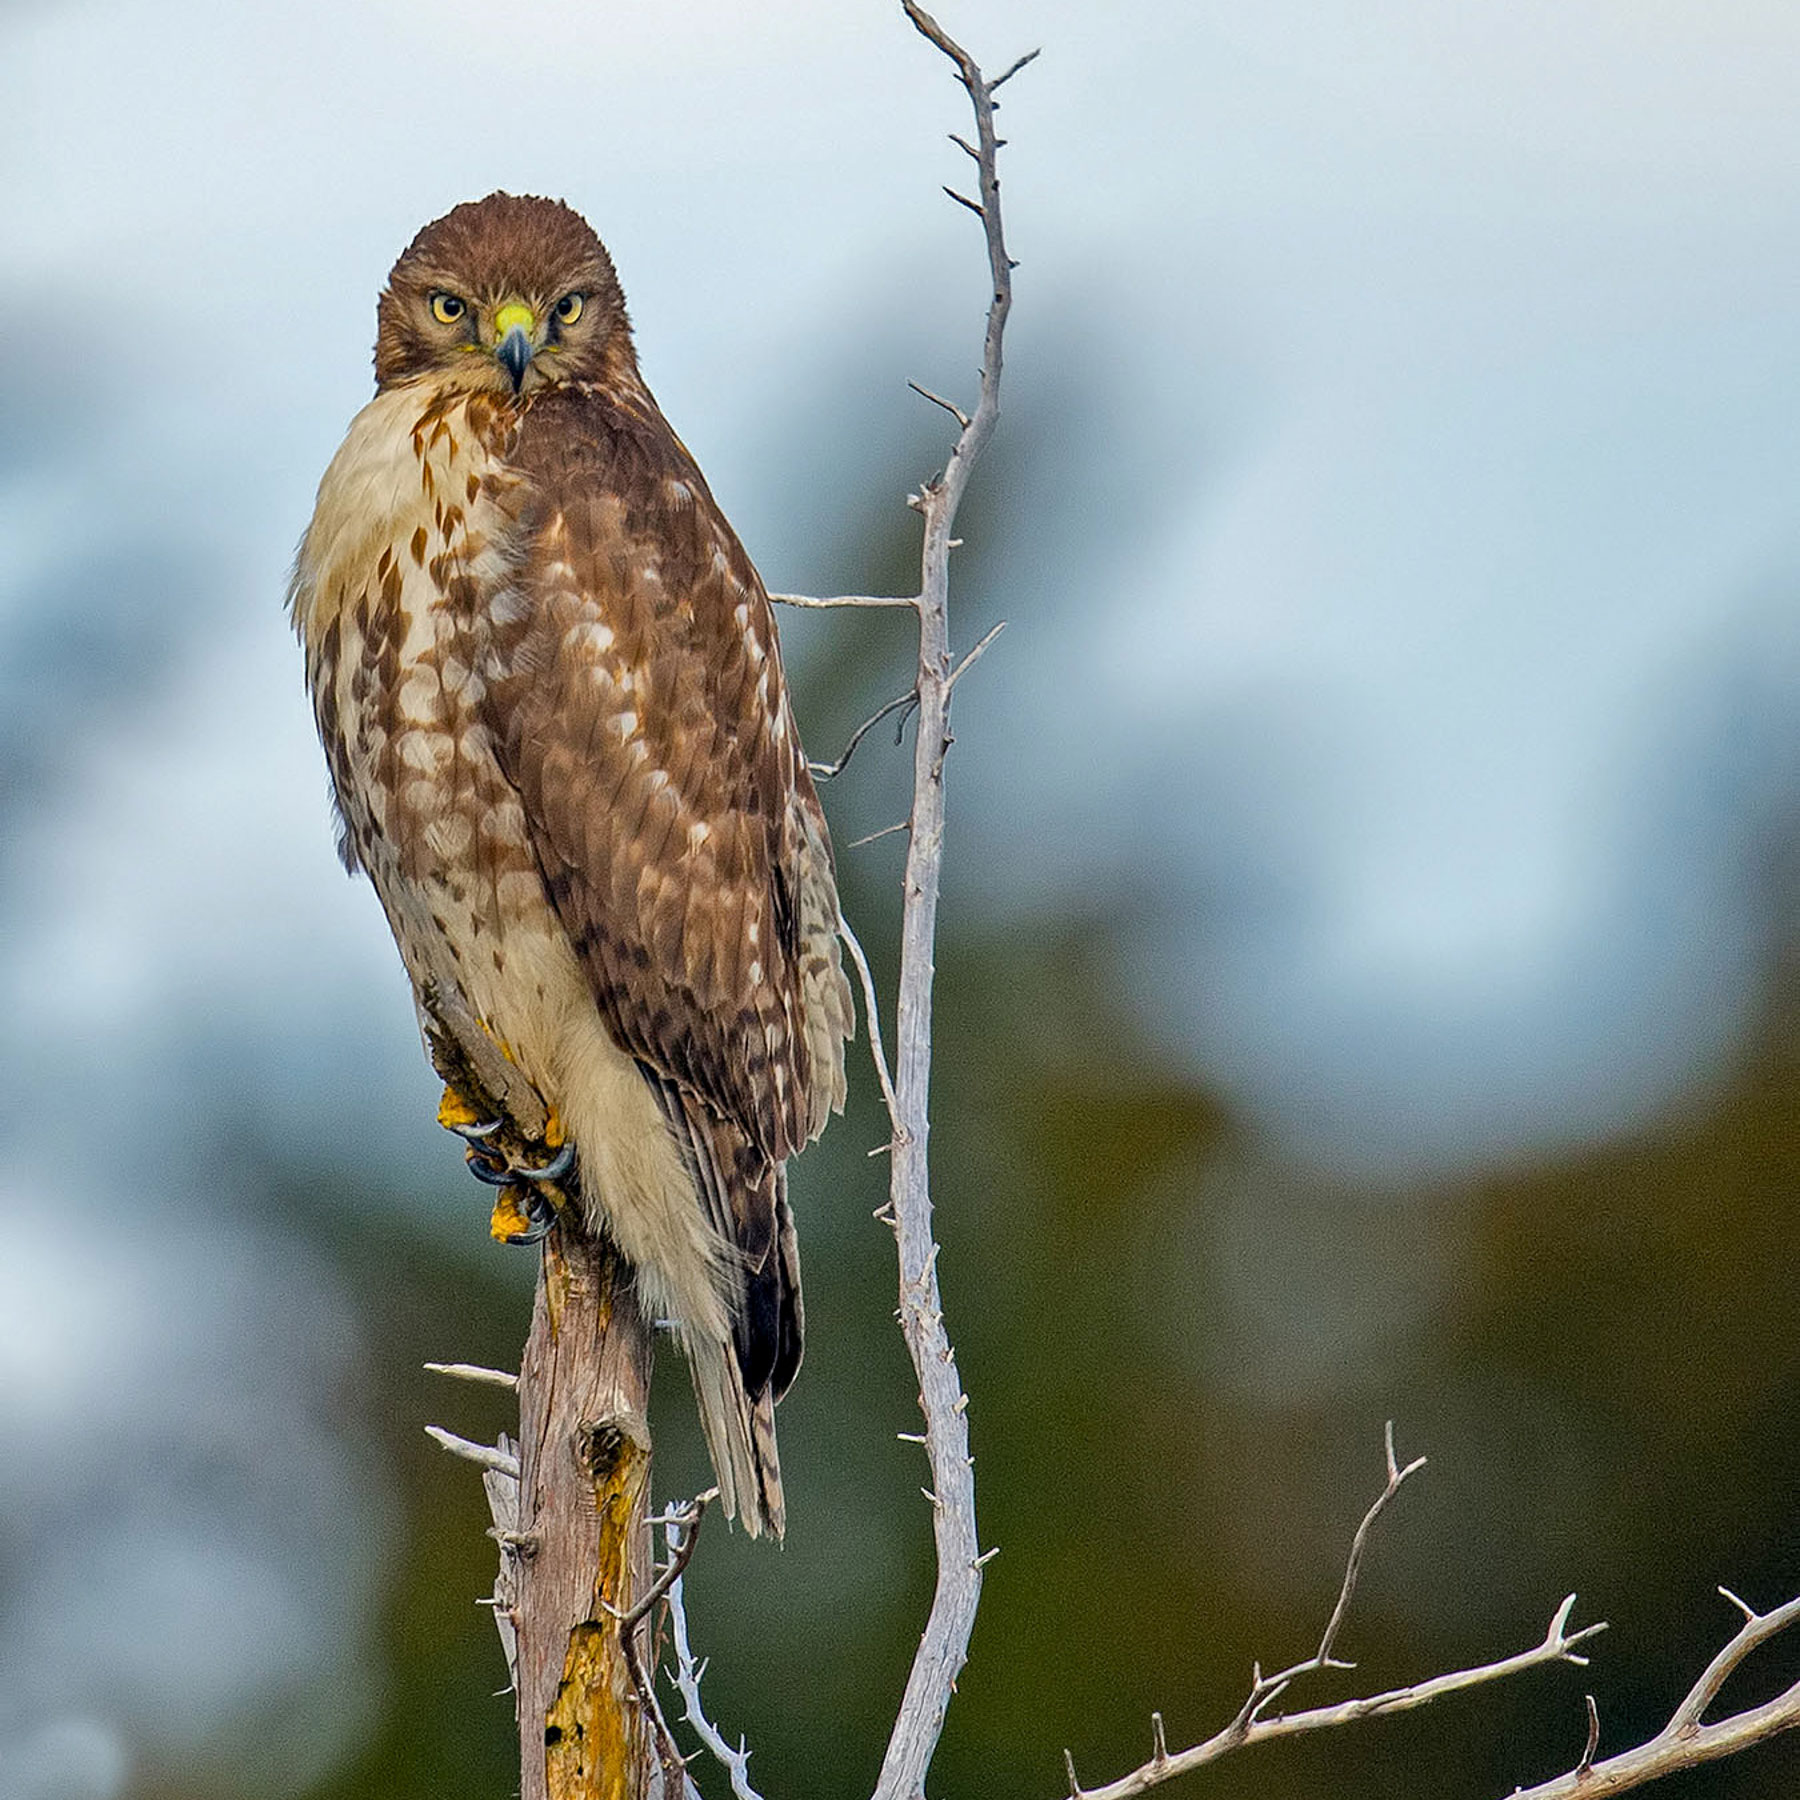 web_apa_2015_briankushner_red-tailed_hawk_kk.jpg